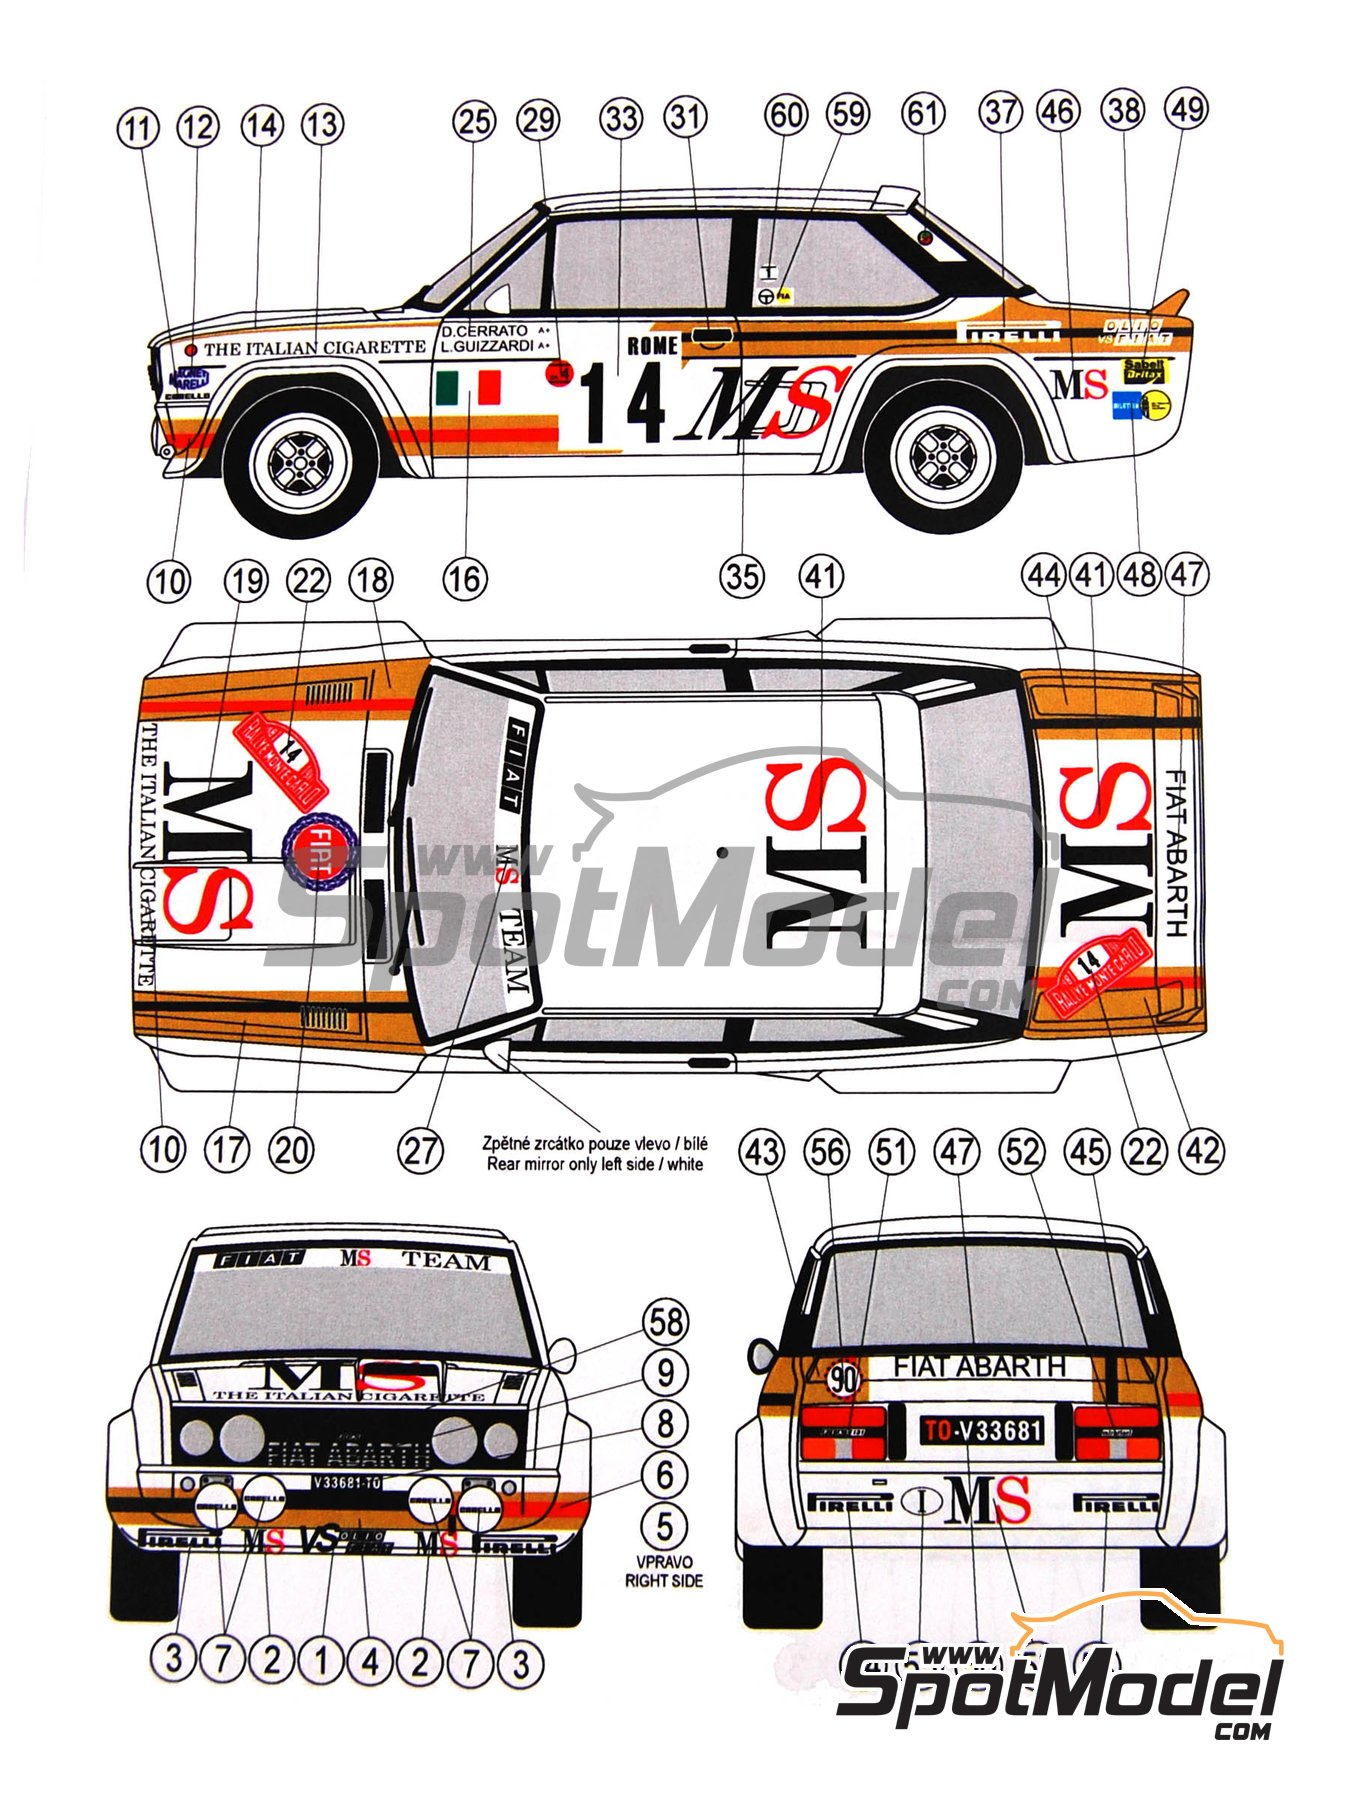 Fiat 131 Abarth - Montecarlo Rally, Tour de Corse 1980 - 1981 | Marking / livery in 1/24 scale manufactured by Reji Model (ref. REJI-115) image